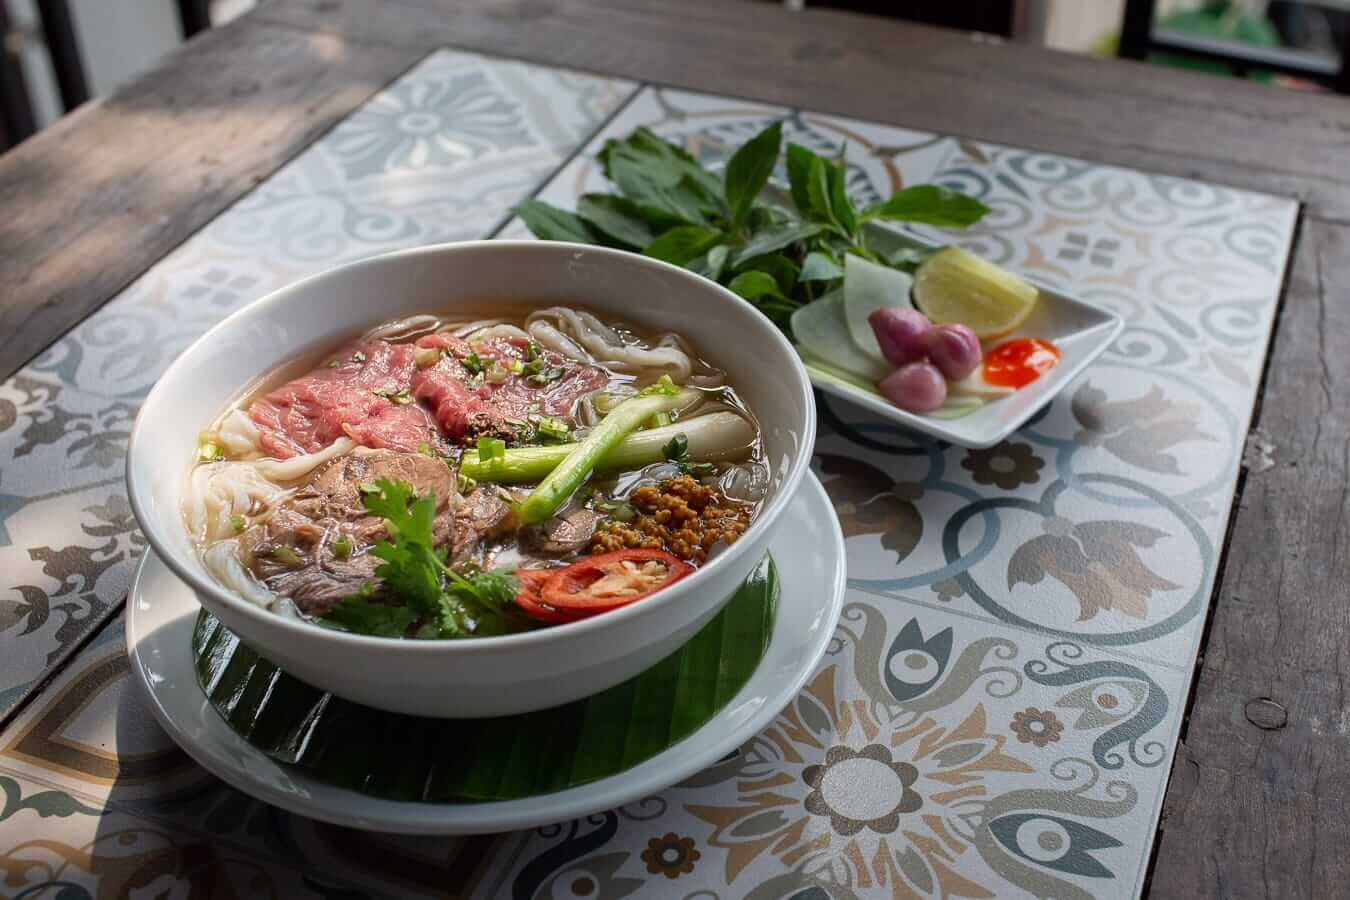 Pho bo at Vy's Marketplace: Best Pho in Hoi An